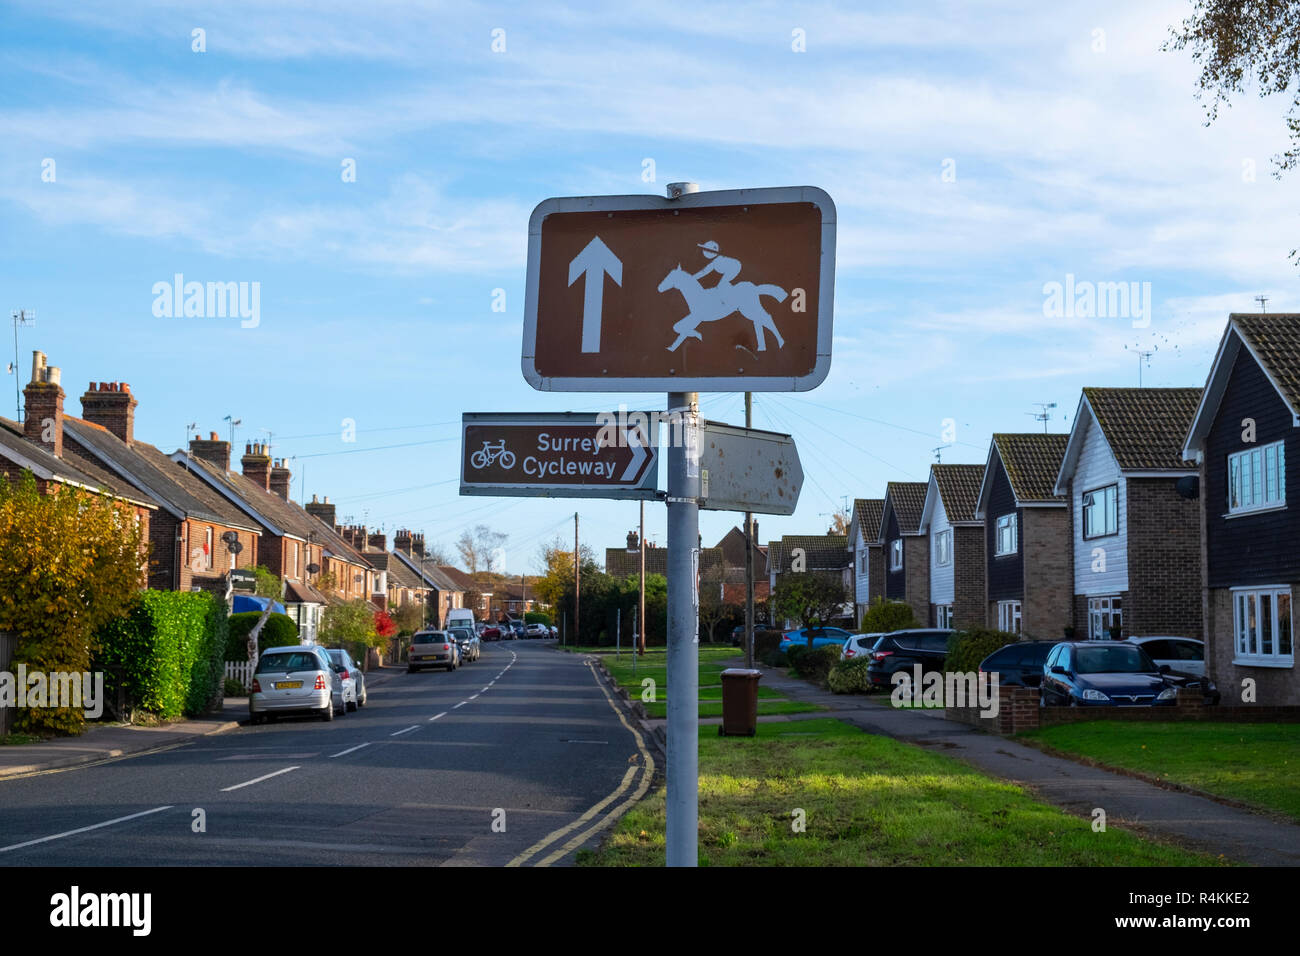 Lingfield horse racing and Surrey Cycleway signs in Lingfield, Surrey, UK - Stock Image